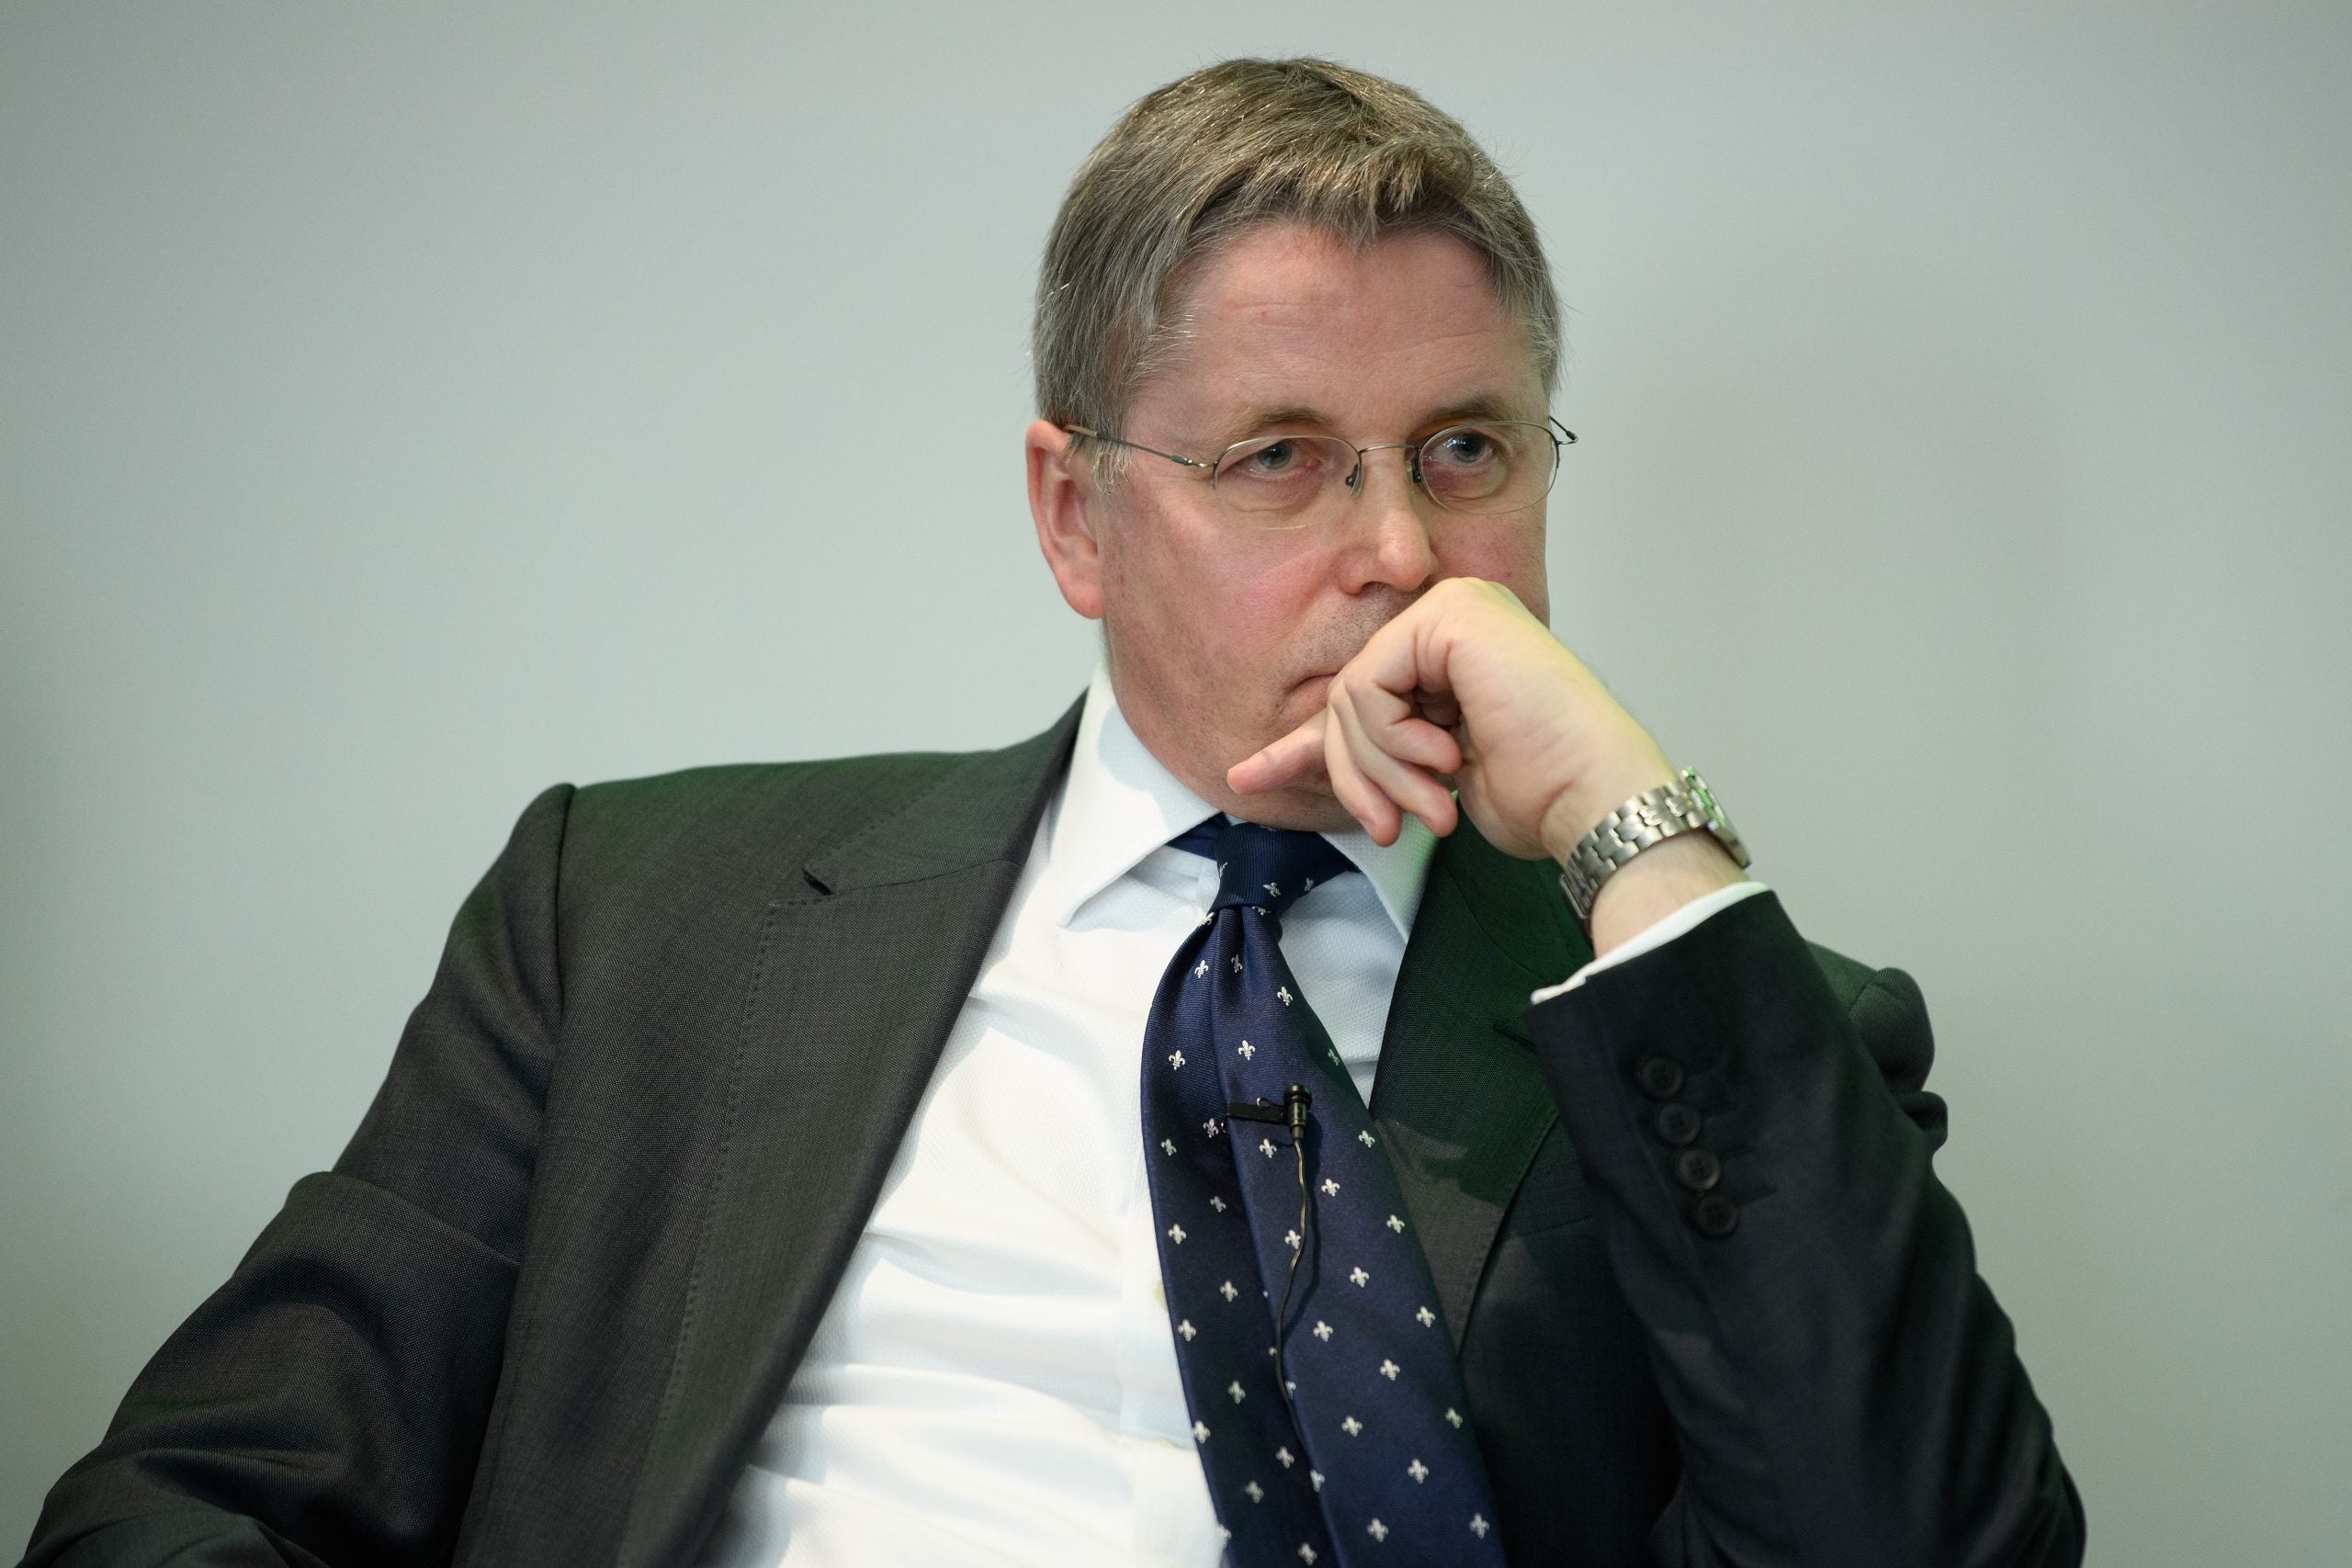 Letter of the week: Jeremy Heywood, the radical